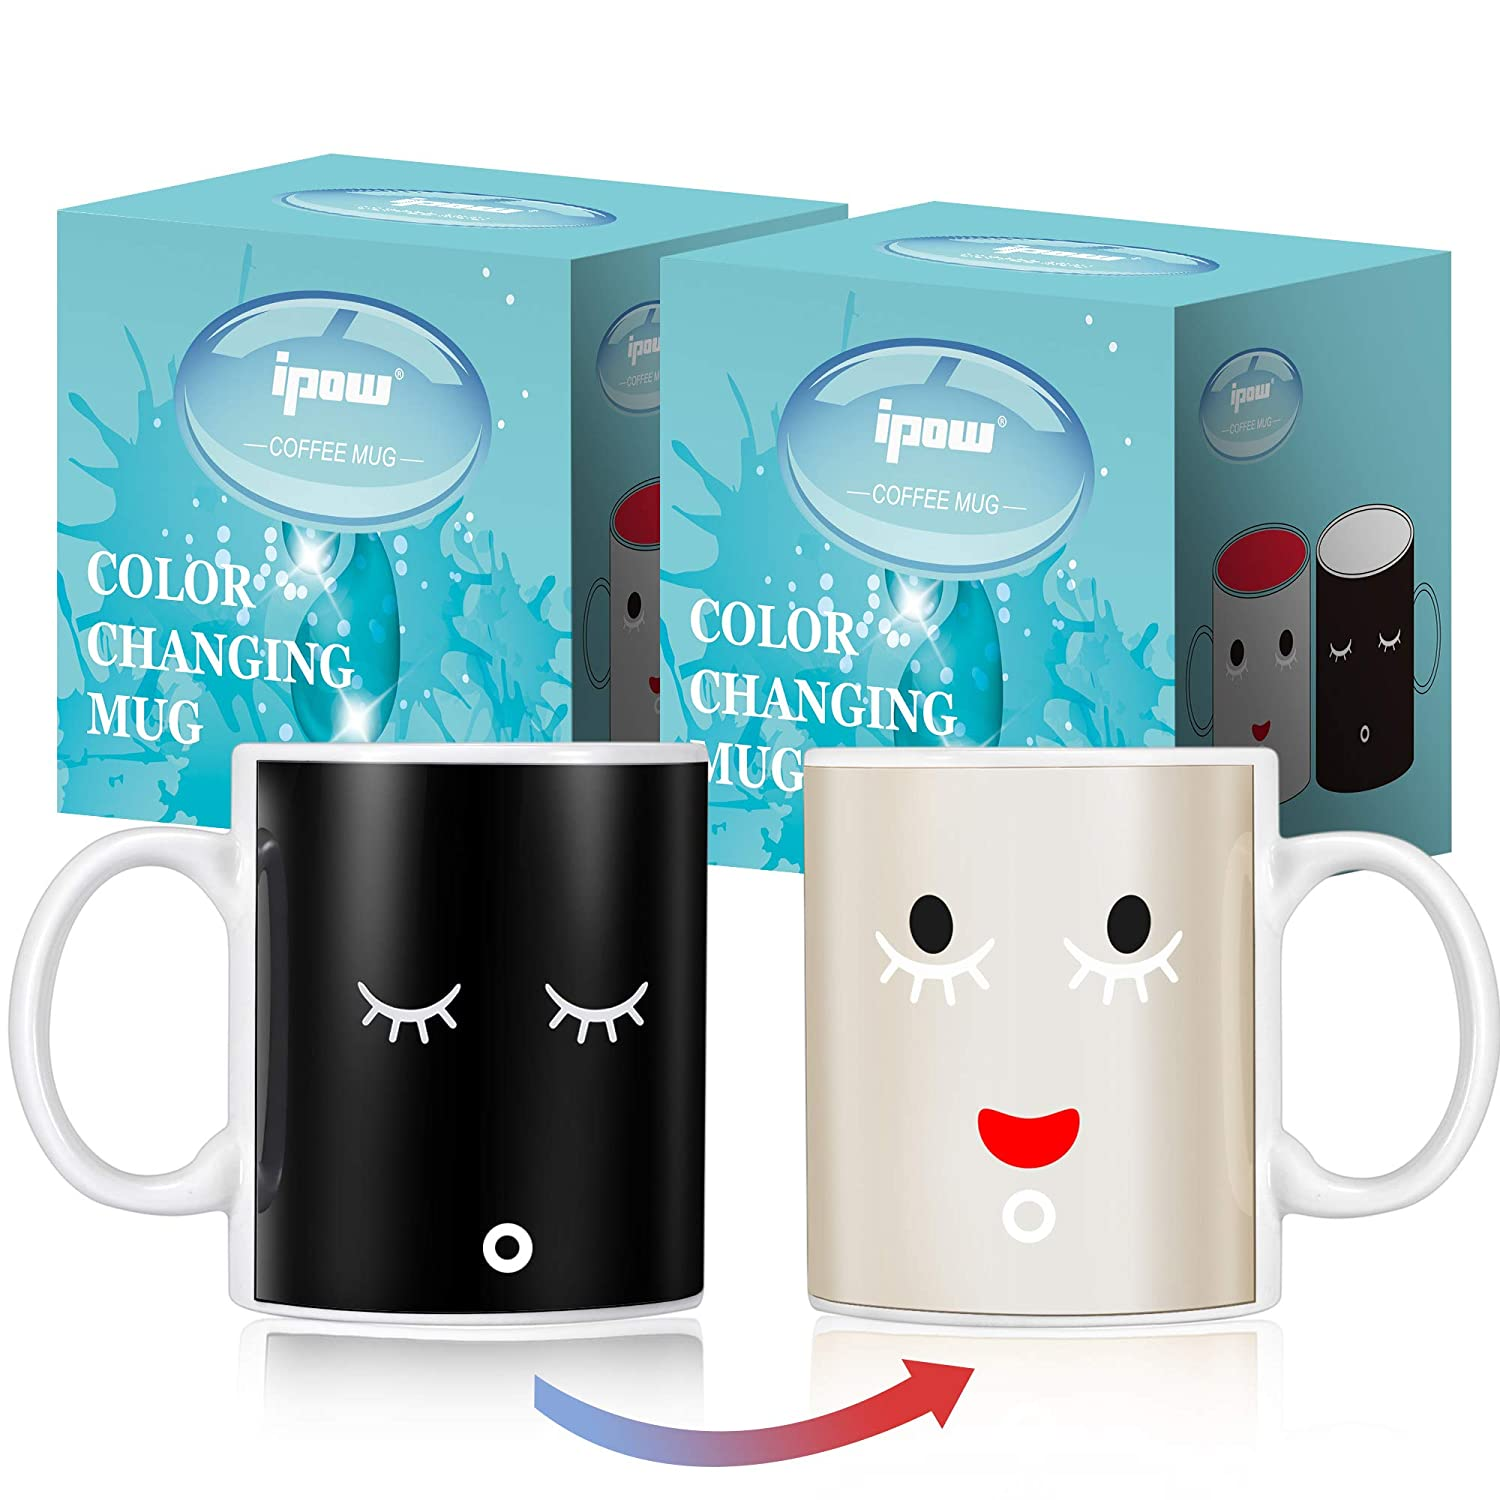 Ipow 2 Pack Neat Magic Morning Mug Coffee Tea Milk Hot Cold Heat Sensitive Color-changing Mug Cup - Great Gift for Any Holiday